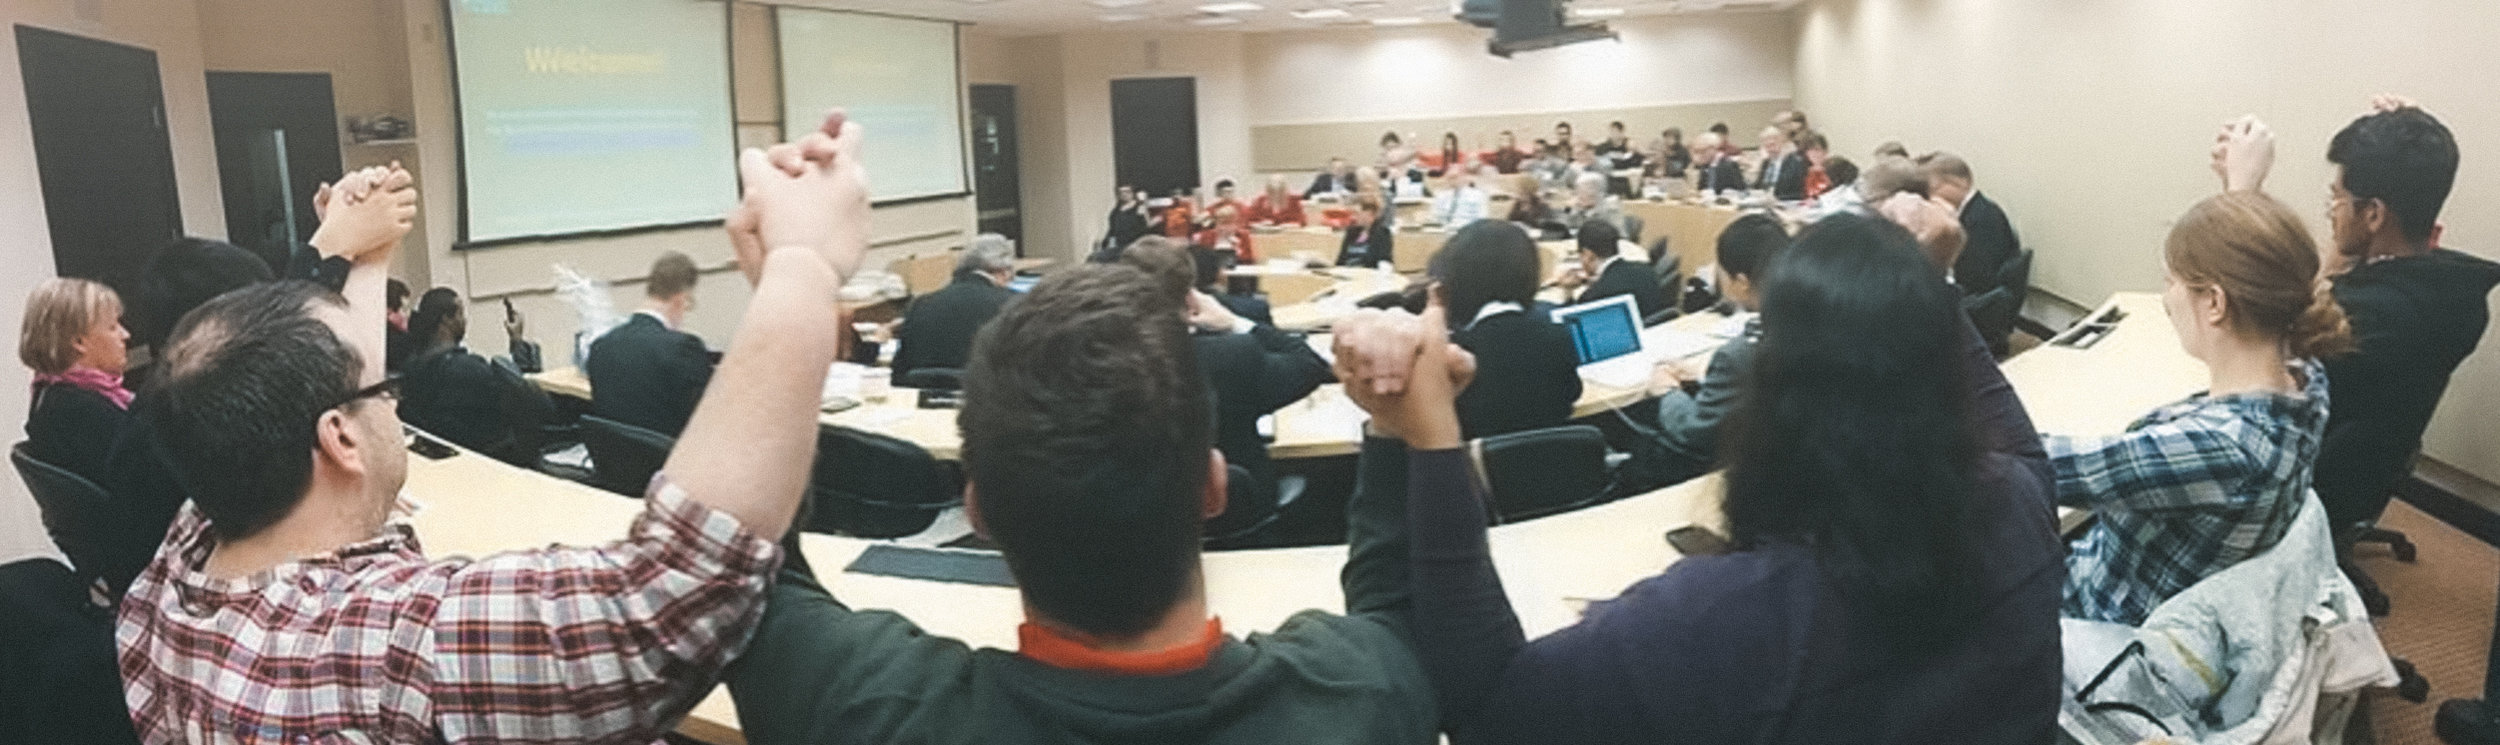 University of Alberta students opposing the international differential fee increase at the Board of Governor's meeting in December 2013. Credit: Joshua Le.